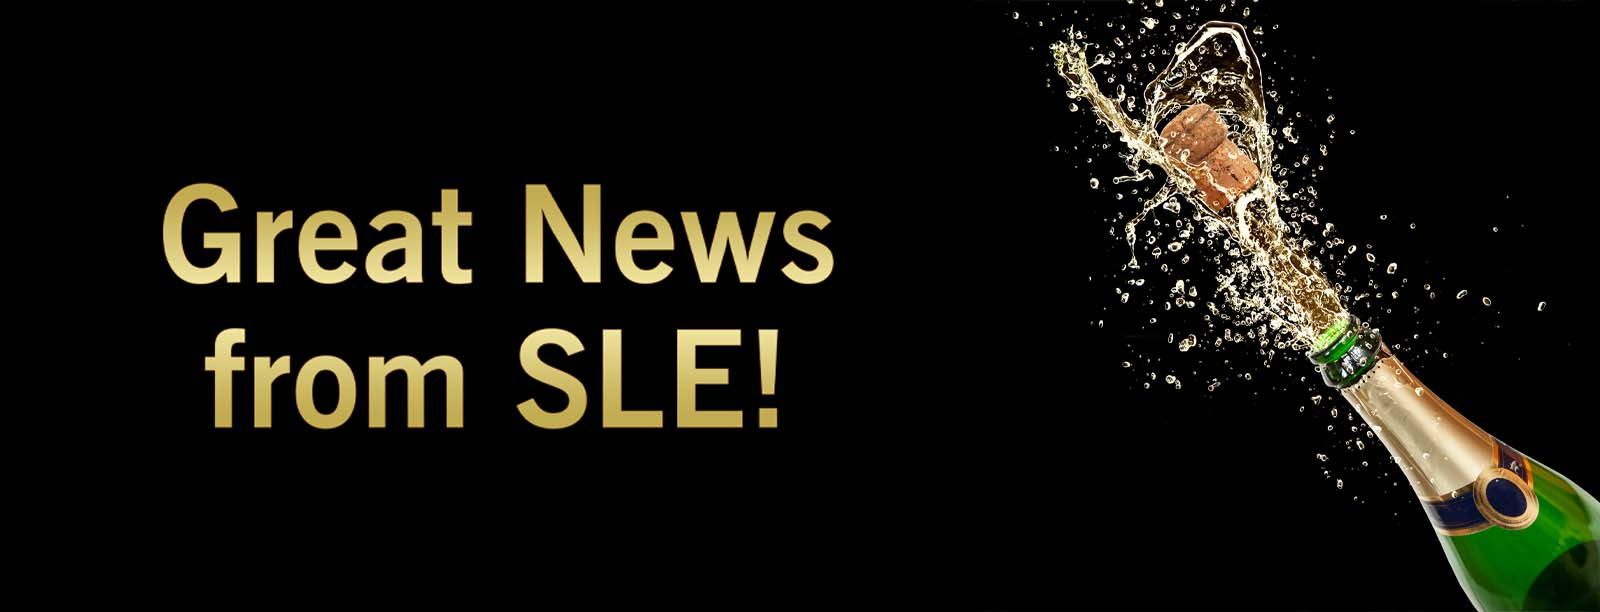 Great News from SLE!